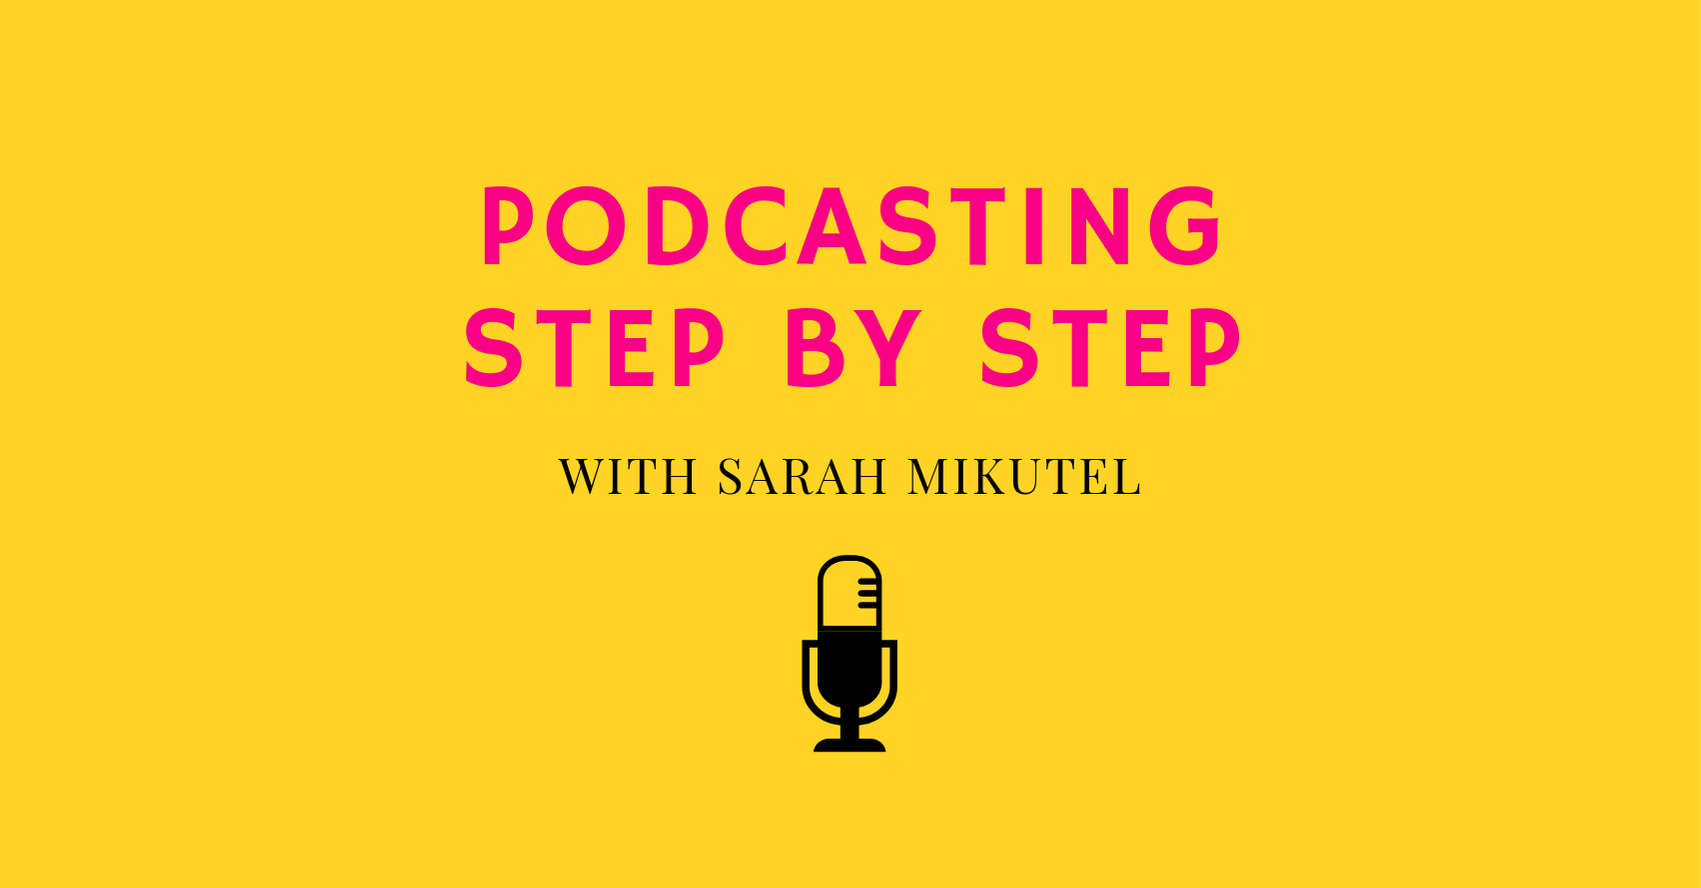 Podcasting Step by Step with Sarah Mikutel